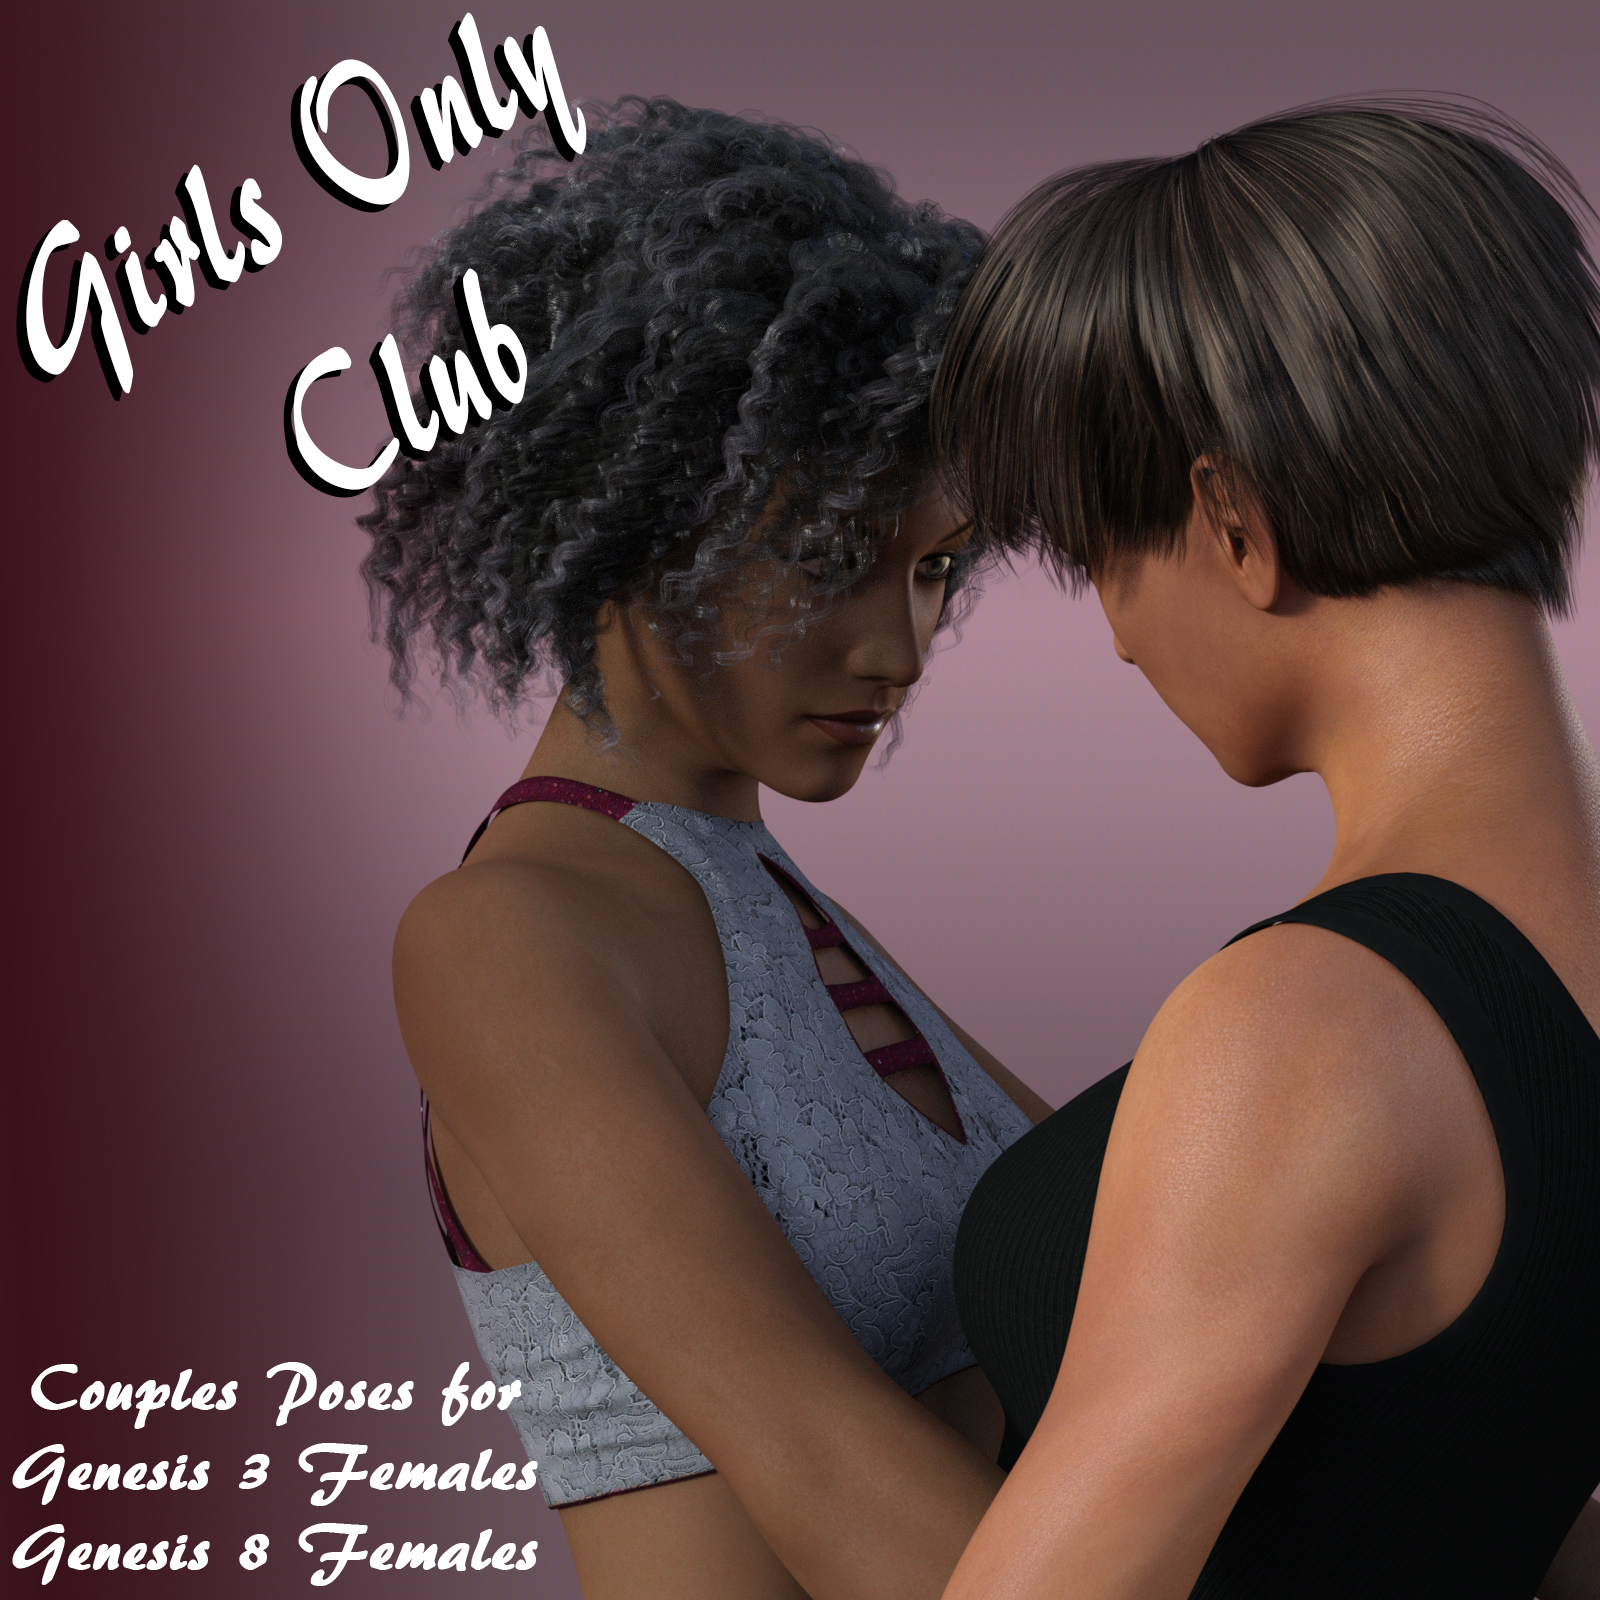 Girls Only Club: Couples Poses for G3F and G8F by aeris19